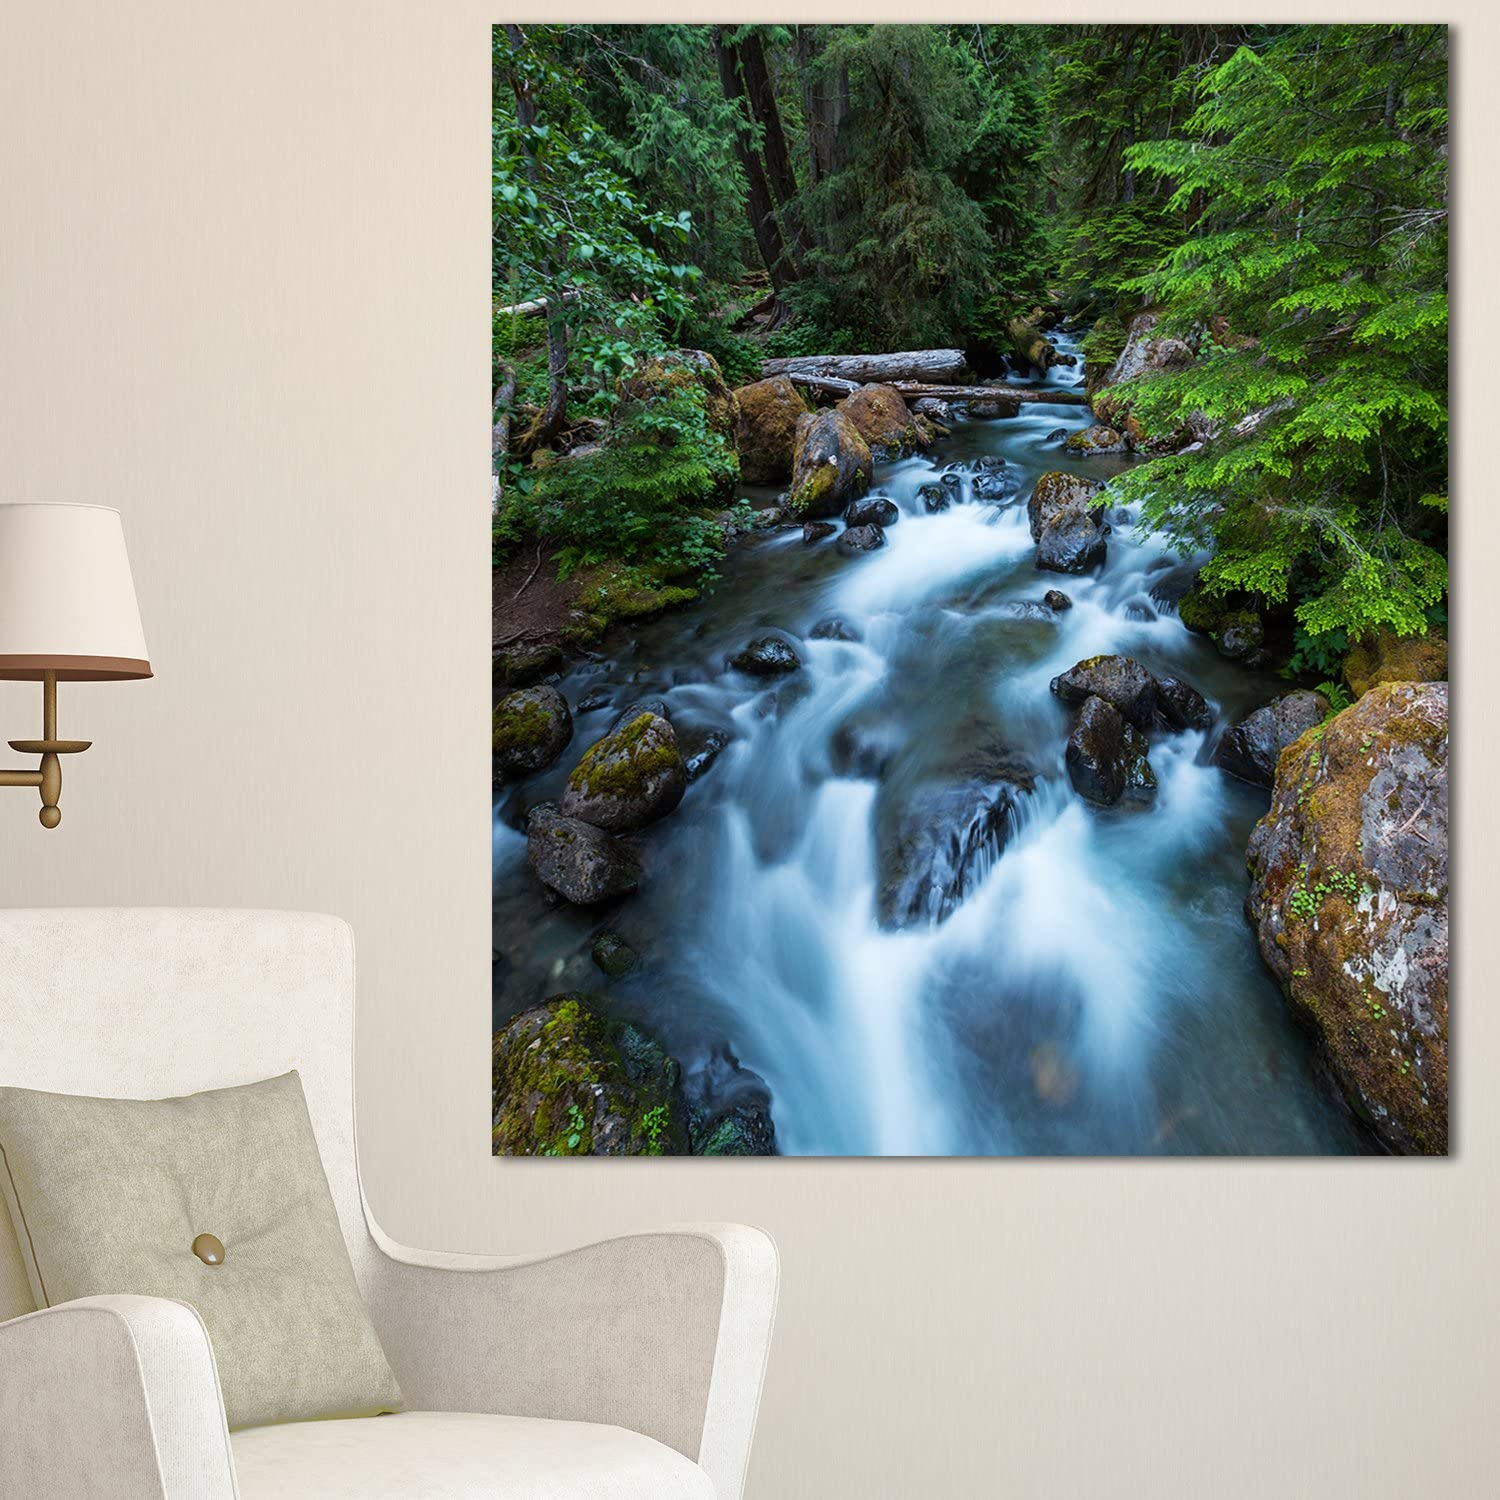 Amazon Com Design Art Mt12313 30 40 Rushing Water In Forest Creek Extra Large Landscape Glossy Metal Wall Art 30x40 Green 30x40 Home Kitchen